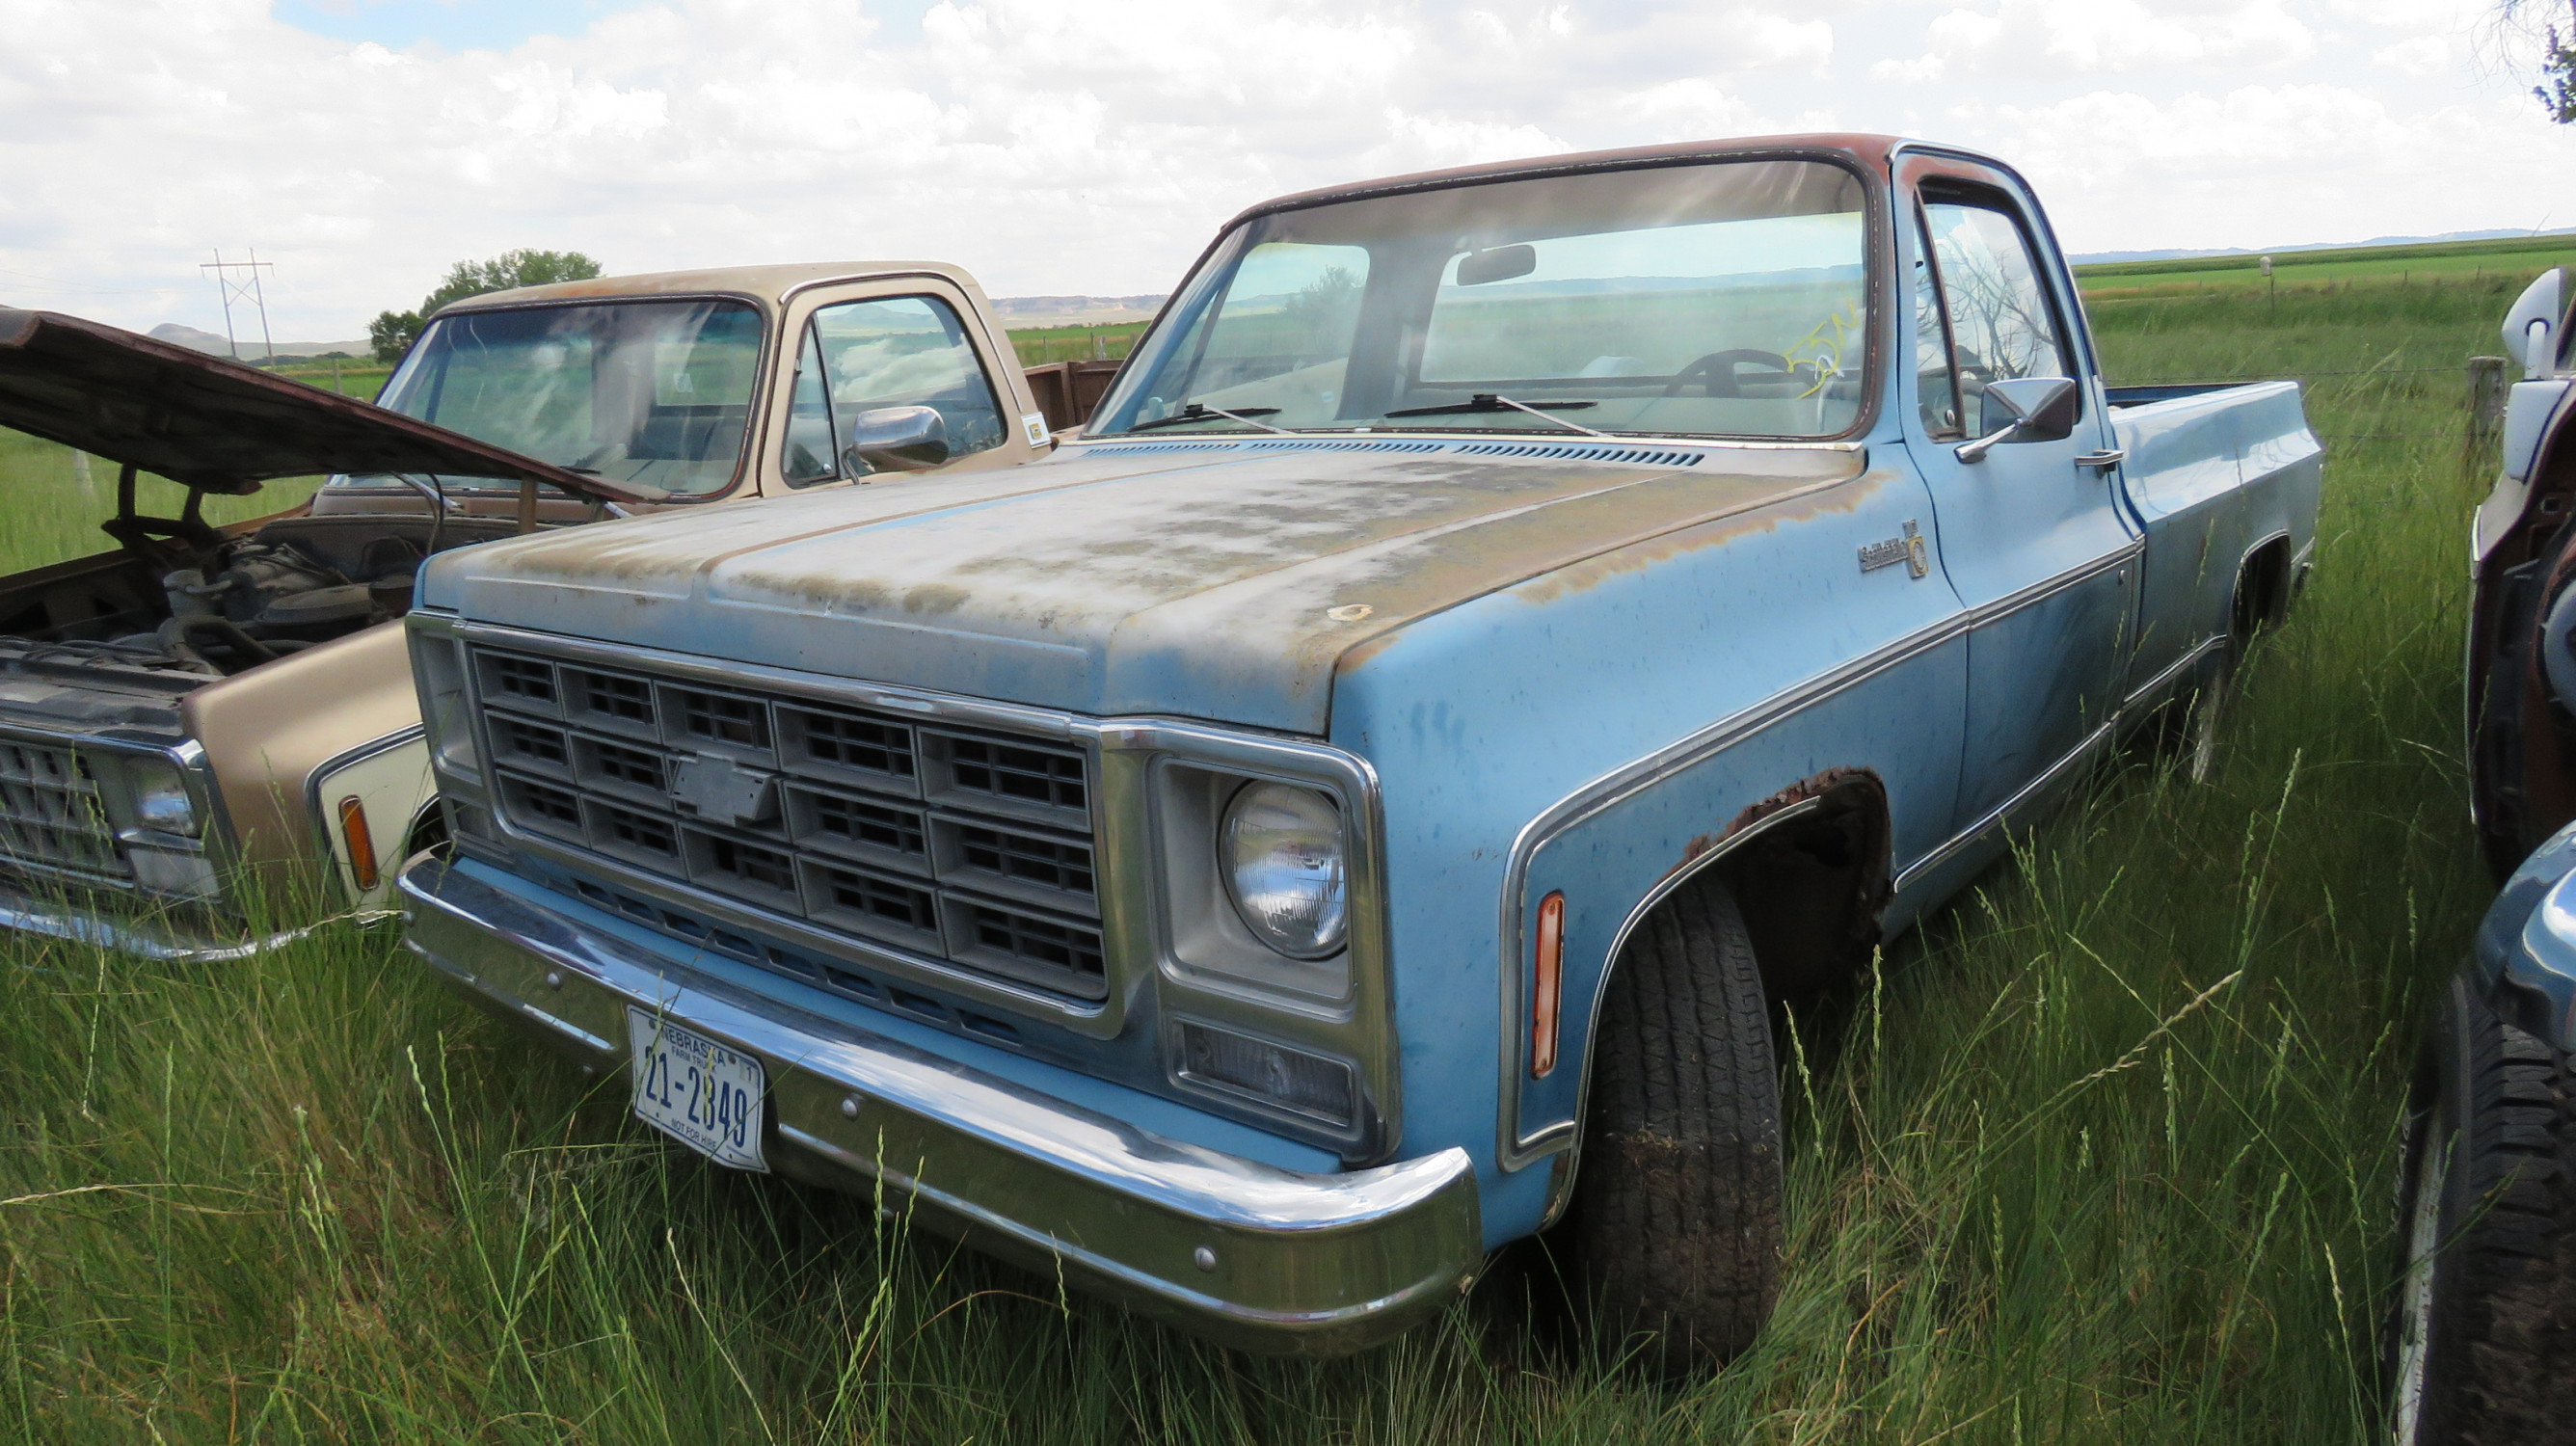 1979 Chevrolet Scottsdale Pickup - Image 1